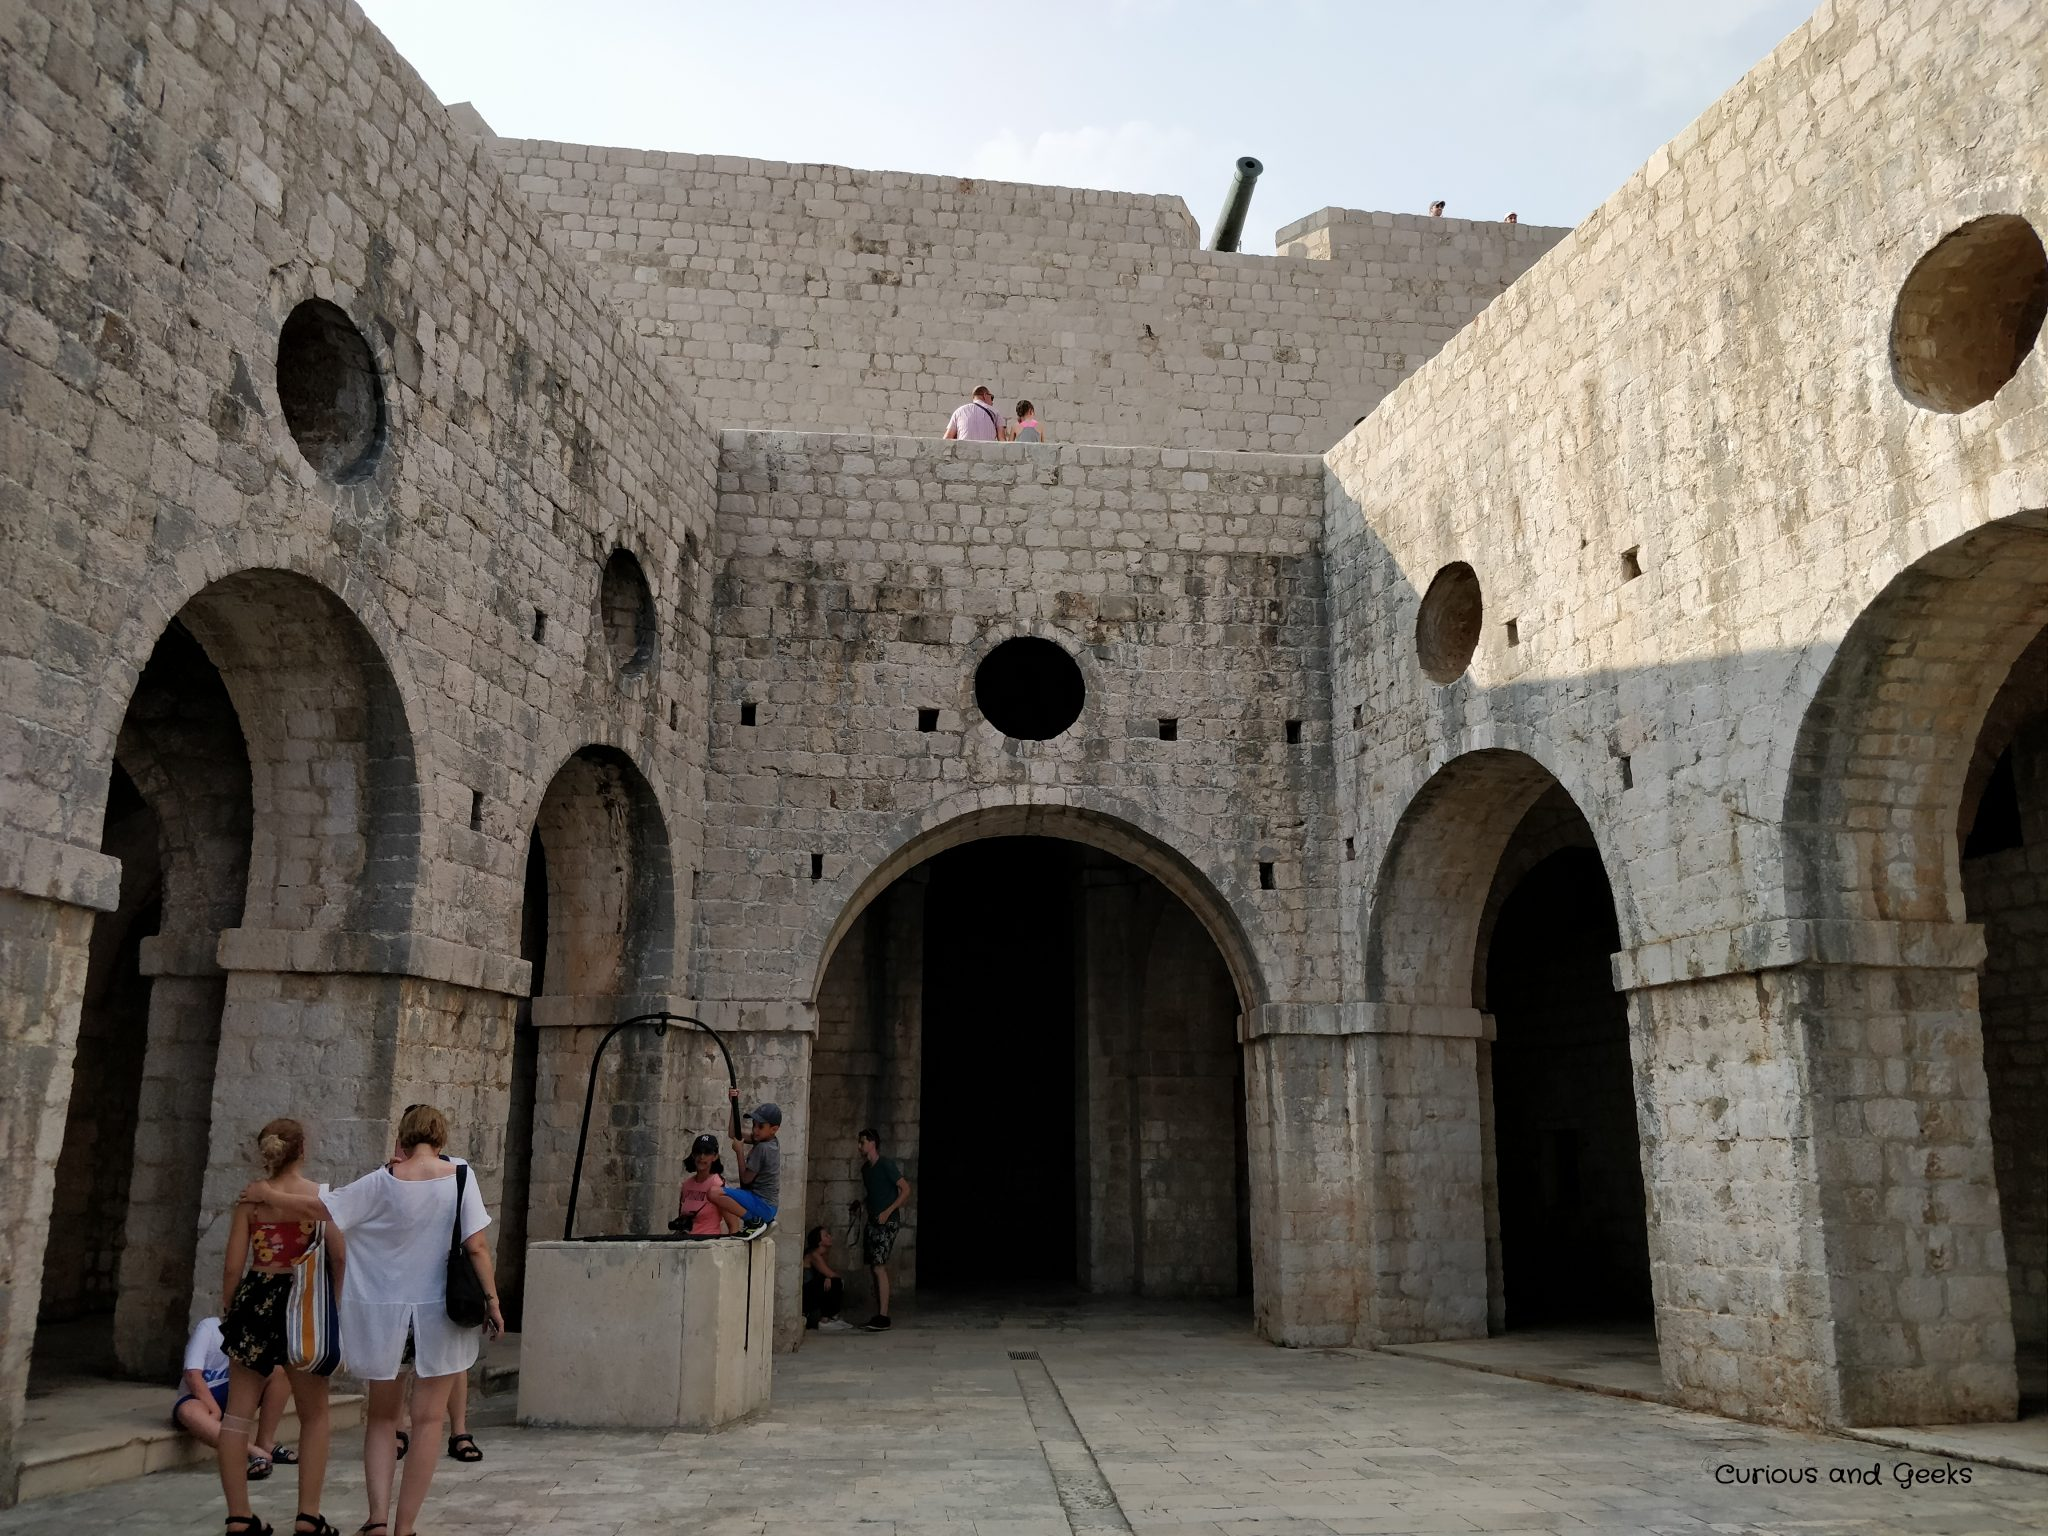 Fort Lovrijenac in Dubrovnik - filming location for s02e01 of Game of Thrones